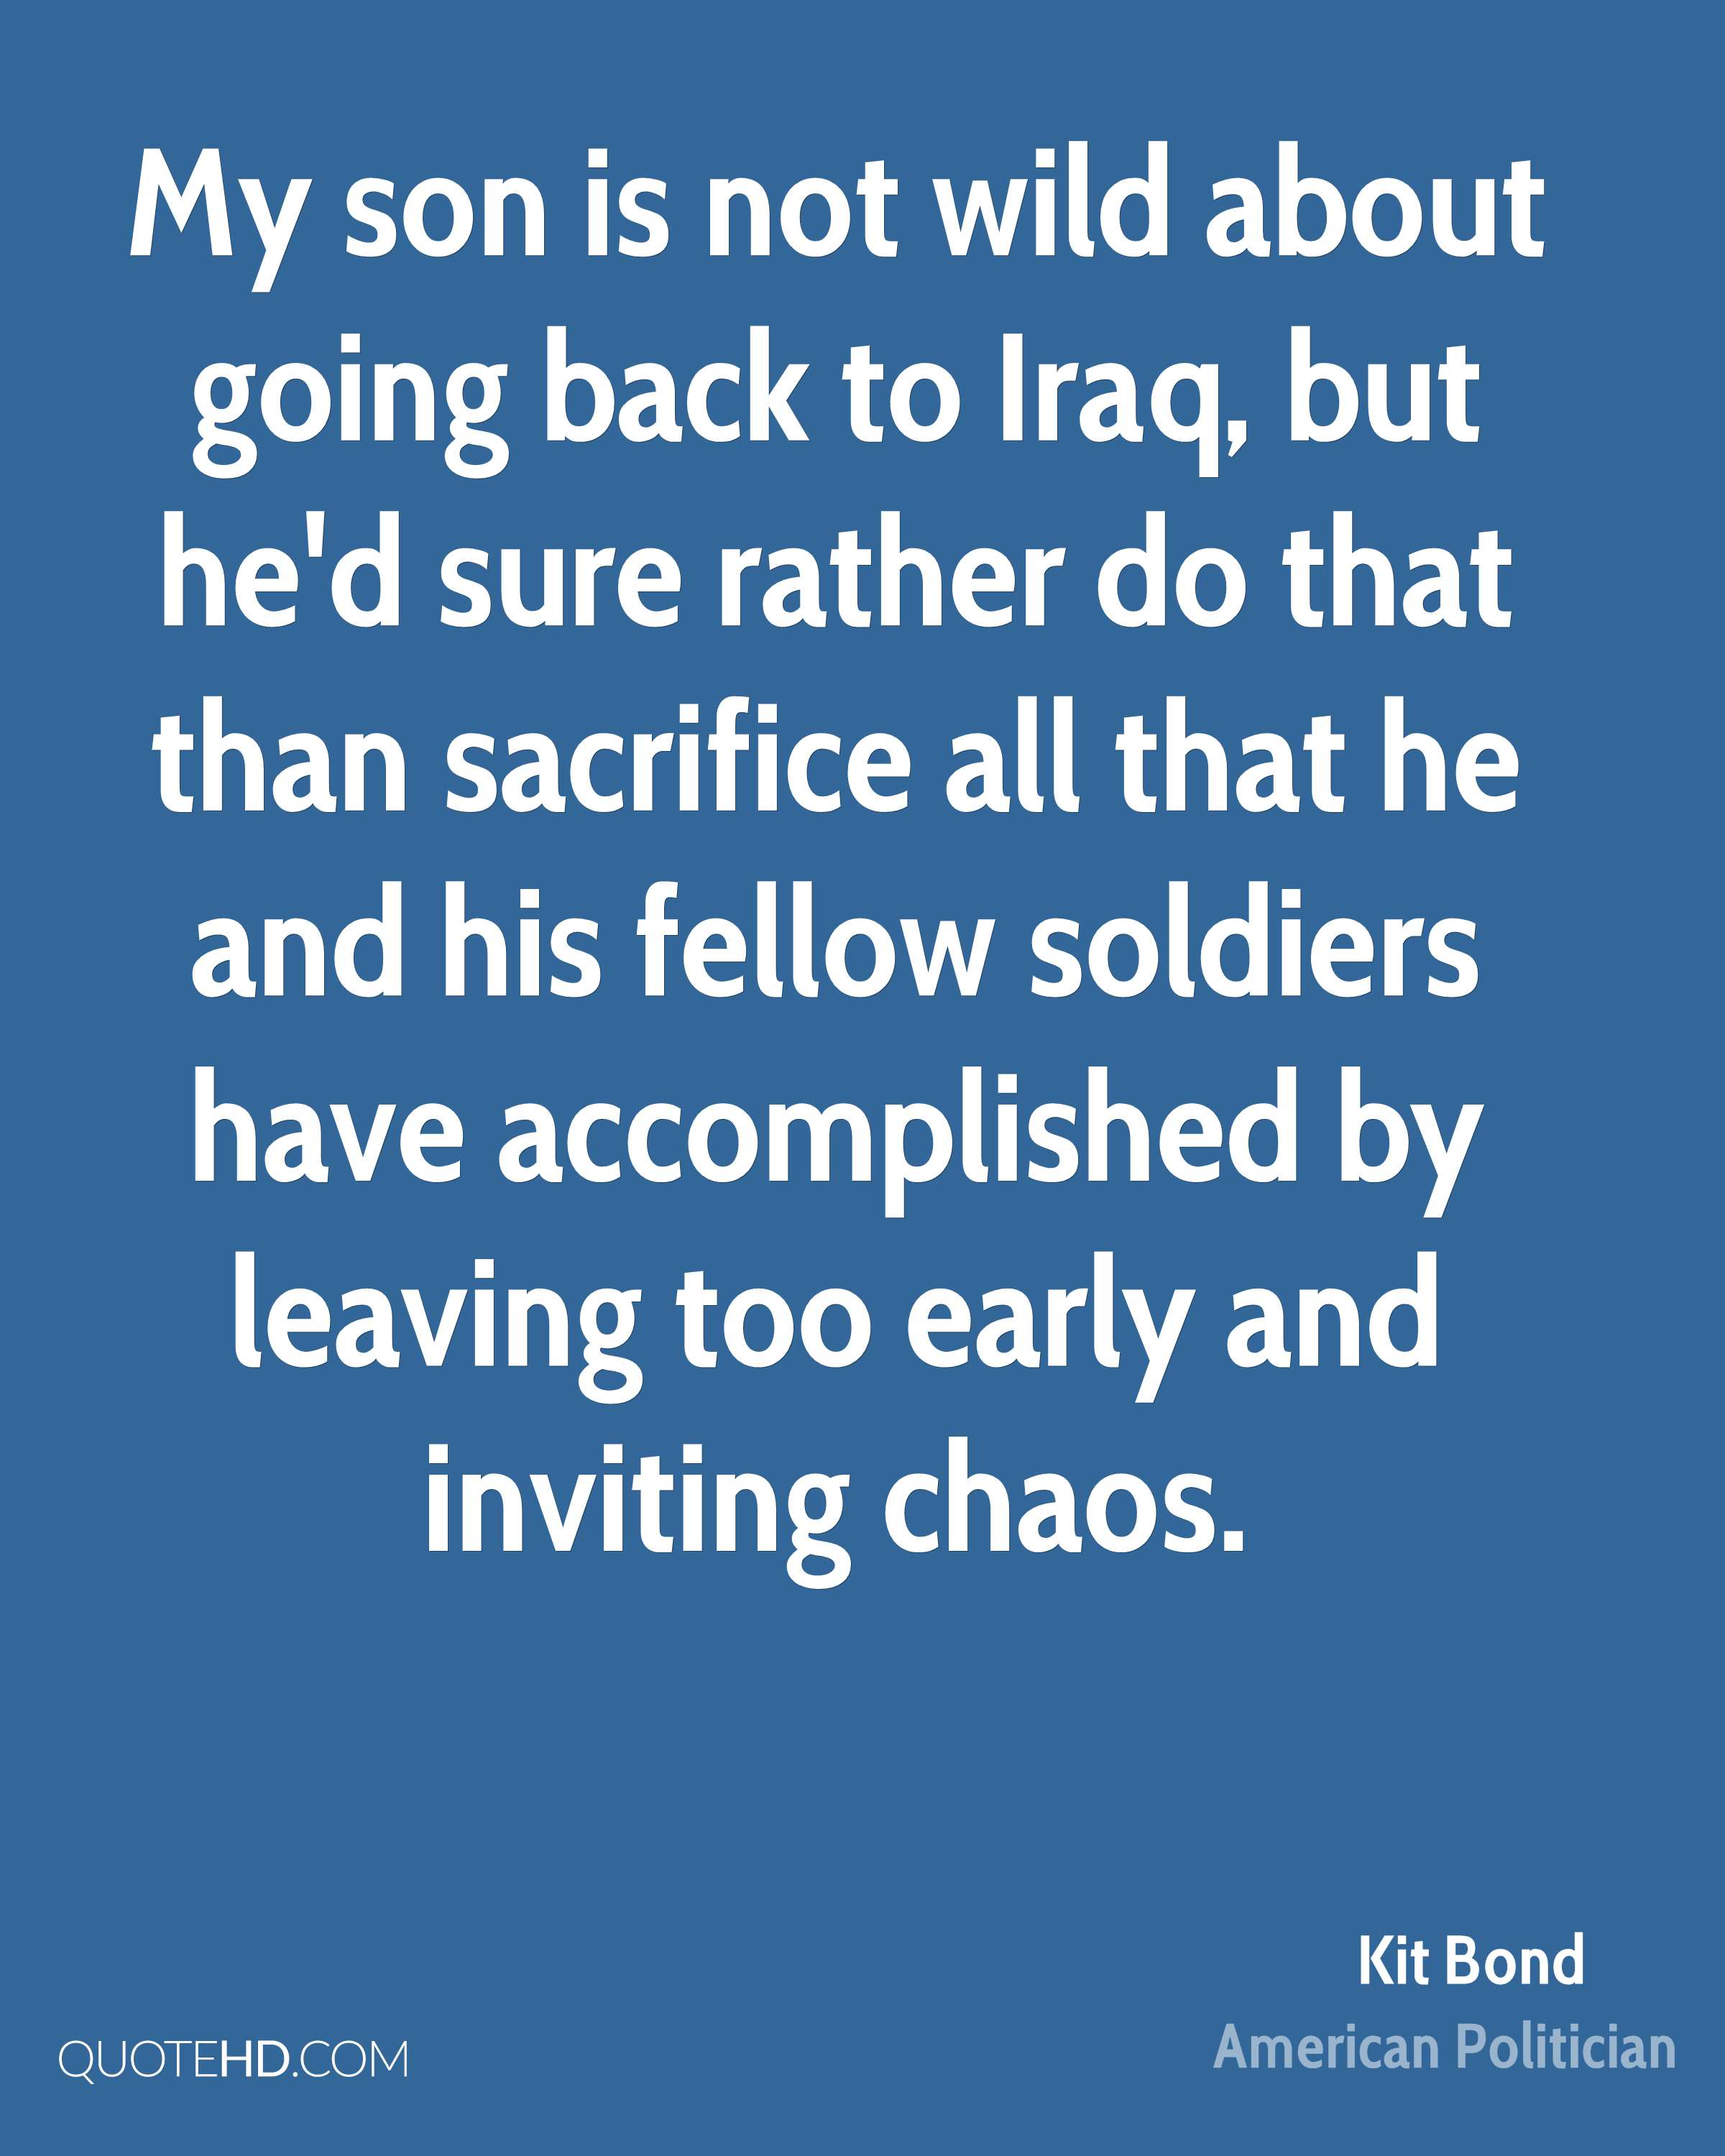 My son is not wild about going back to Iraq, but he'd sure rather do that than sacrifice all that he and his fellow soldiers have accomplished by leaving too early and inviting chaos.